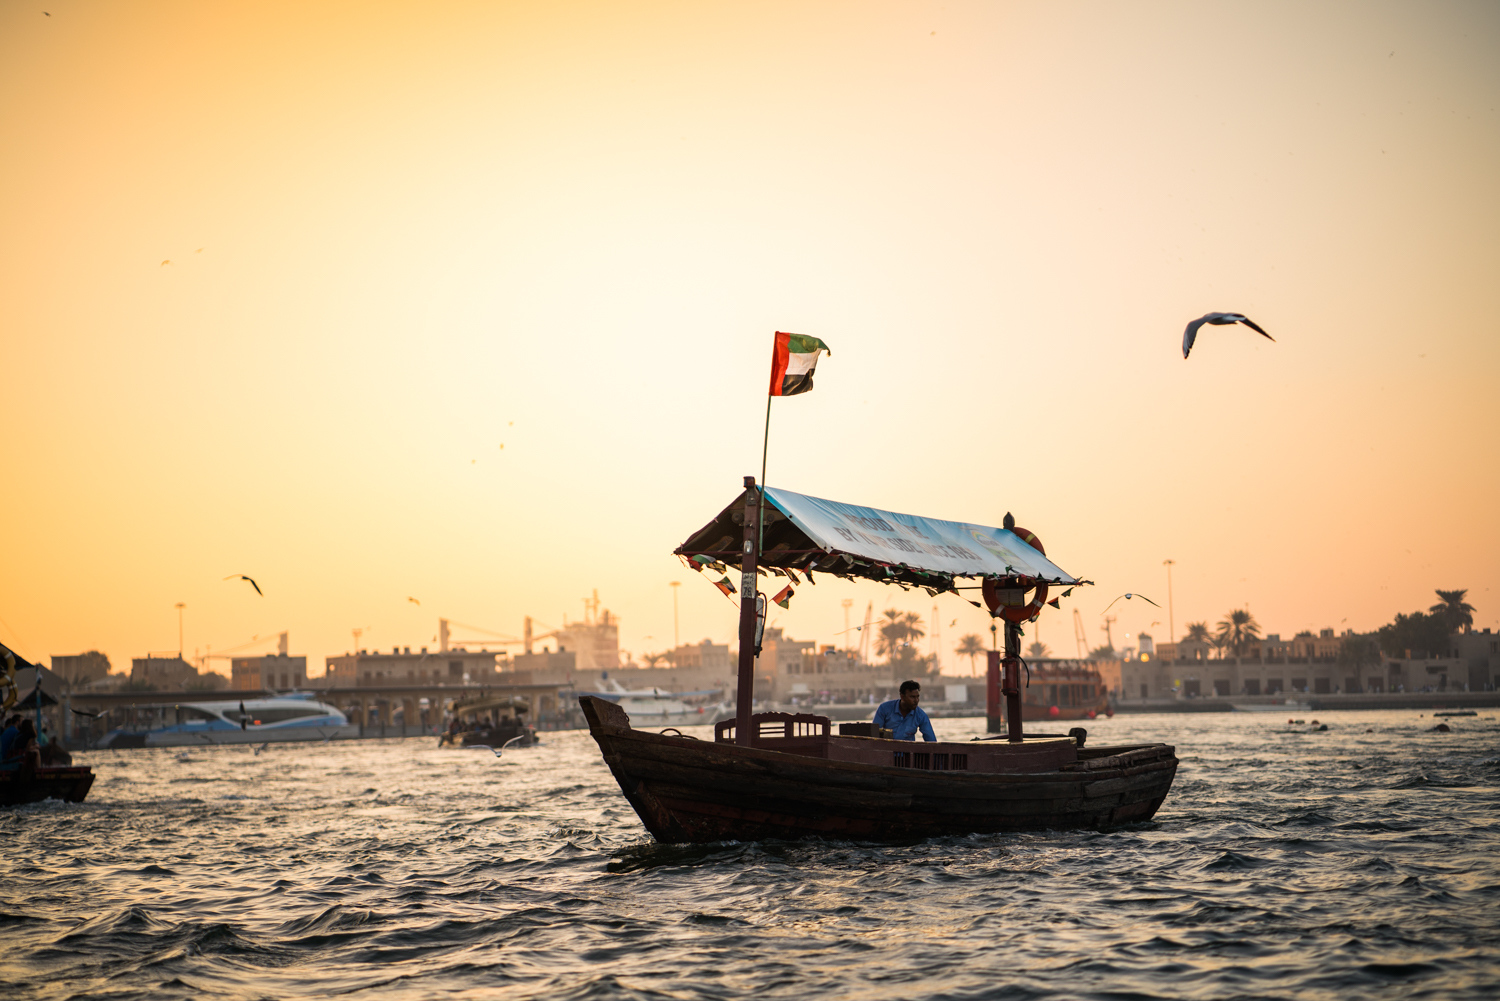 One of the boats cruising through Dubai Creek.  Sony A7RII, Zeiss Batis 85mm f/1.8 (iso250, f/1.8, 1/1250s)